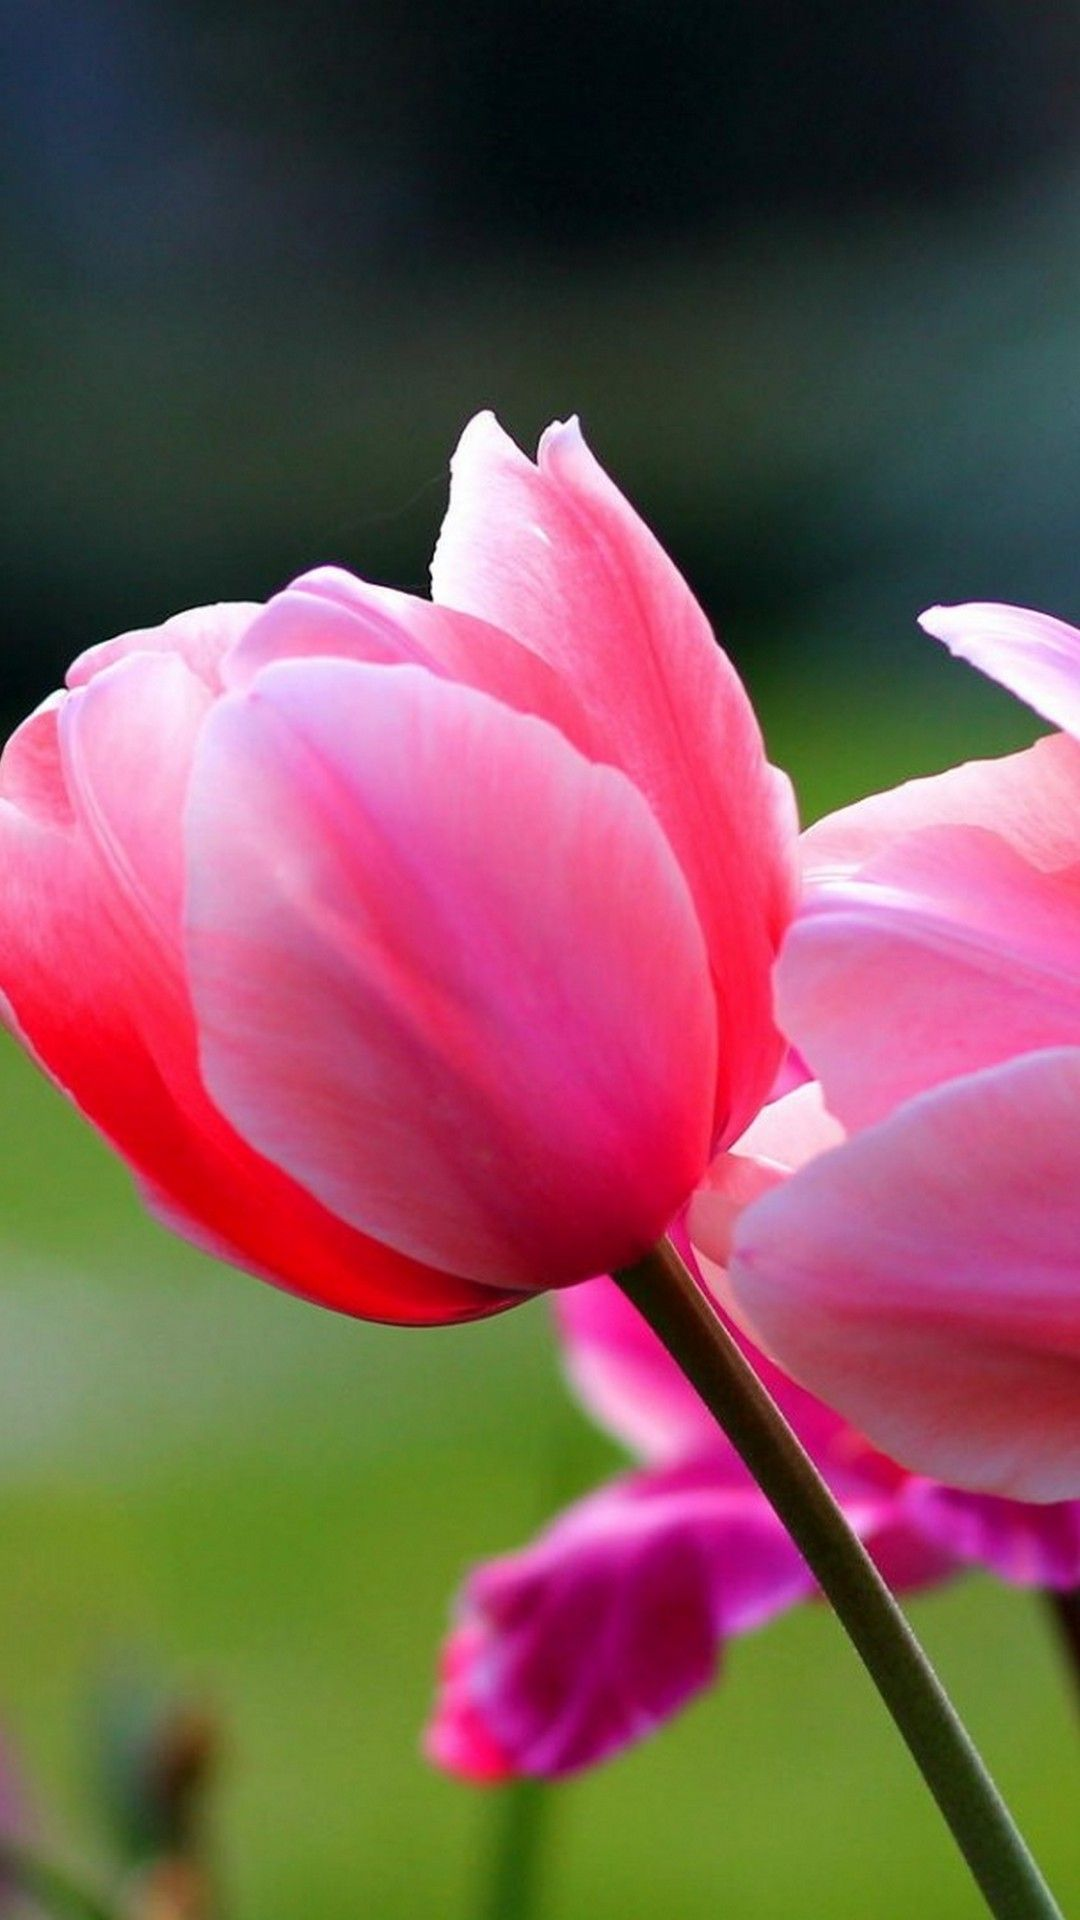 Spring Flowers Wallpapers High Quality Cool Wallpapers